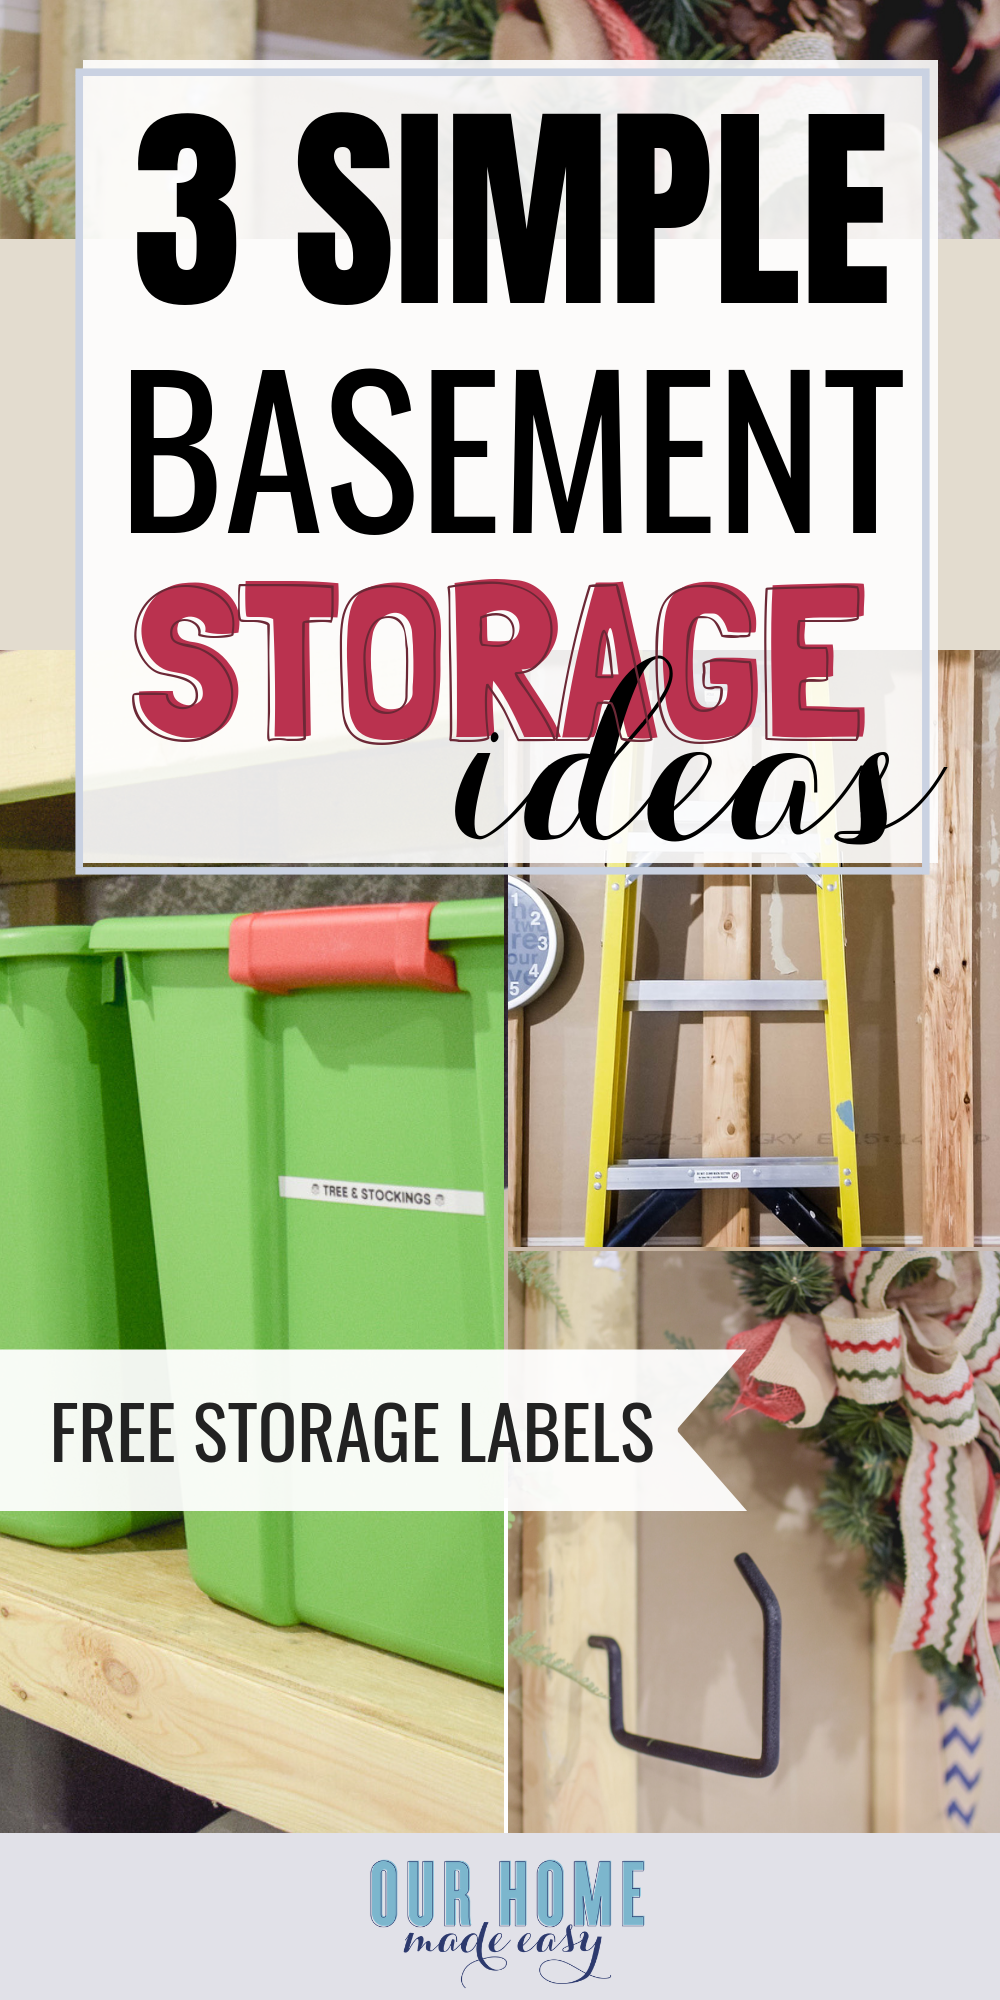 Thesebasement storage organizing ideas will help you get started on gathering your items and making sense of the stuff downstairs. #organization #organizing #ourhomemadeeasy